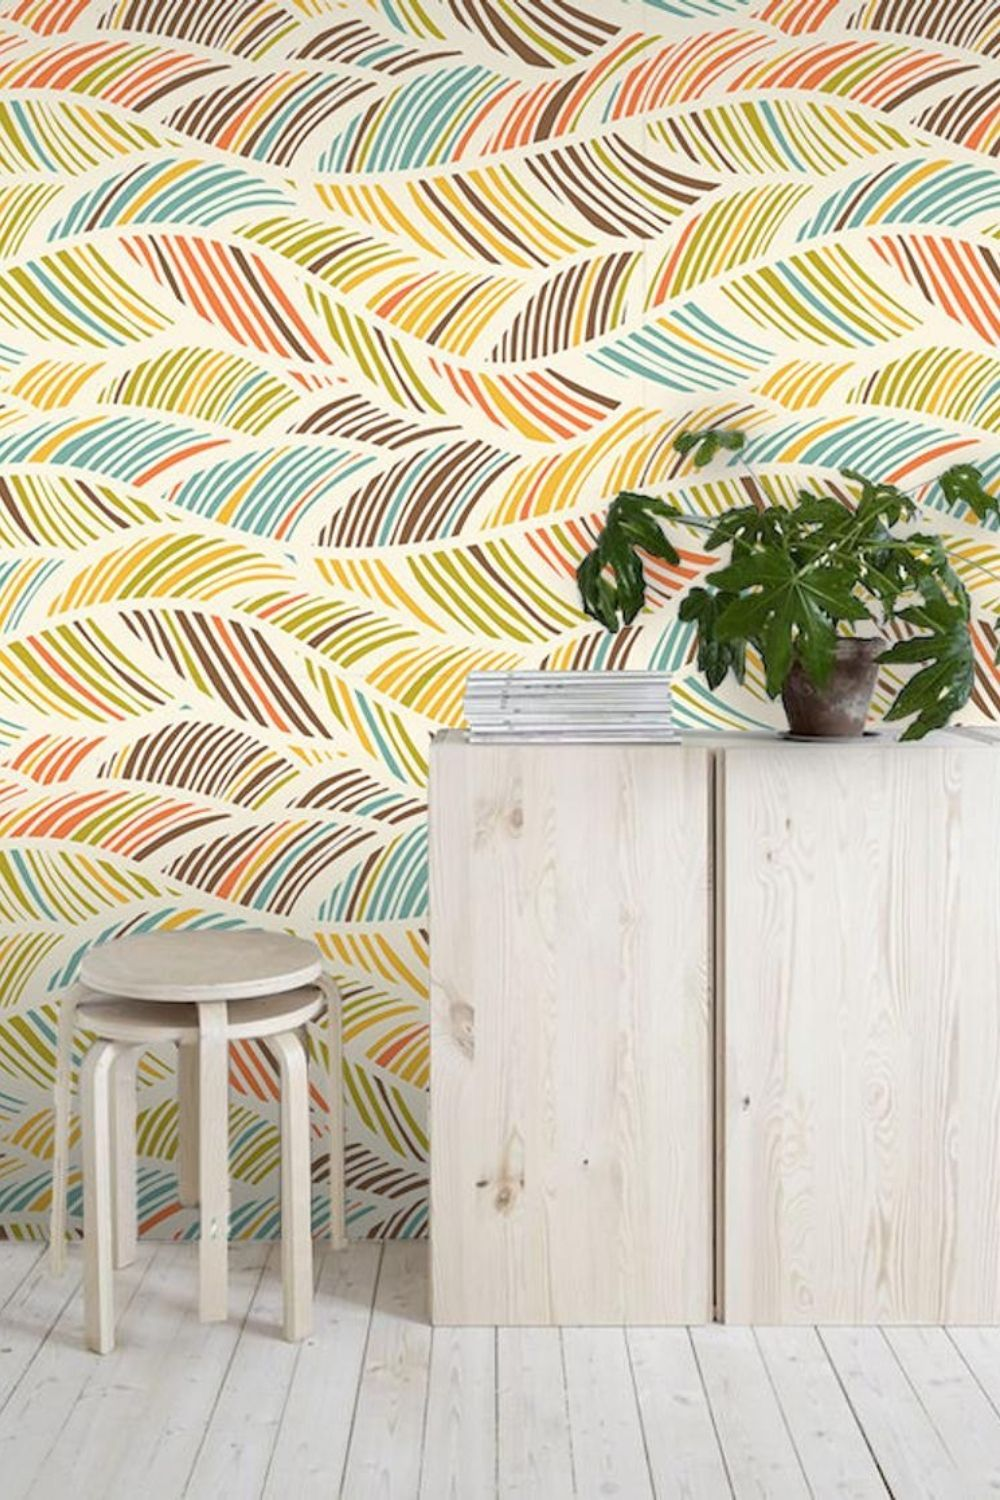 Abstract Removable Wallpaper Colorful Blue And Orange Wall Etsy Removable Wallpaper How To Install Wallpaper Orange Walls